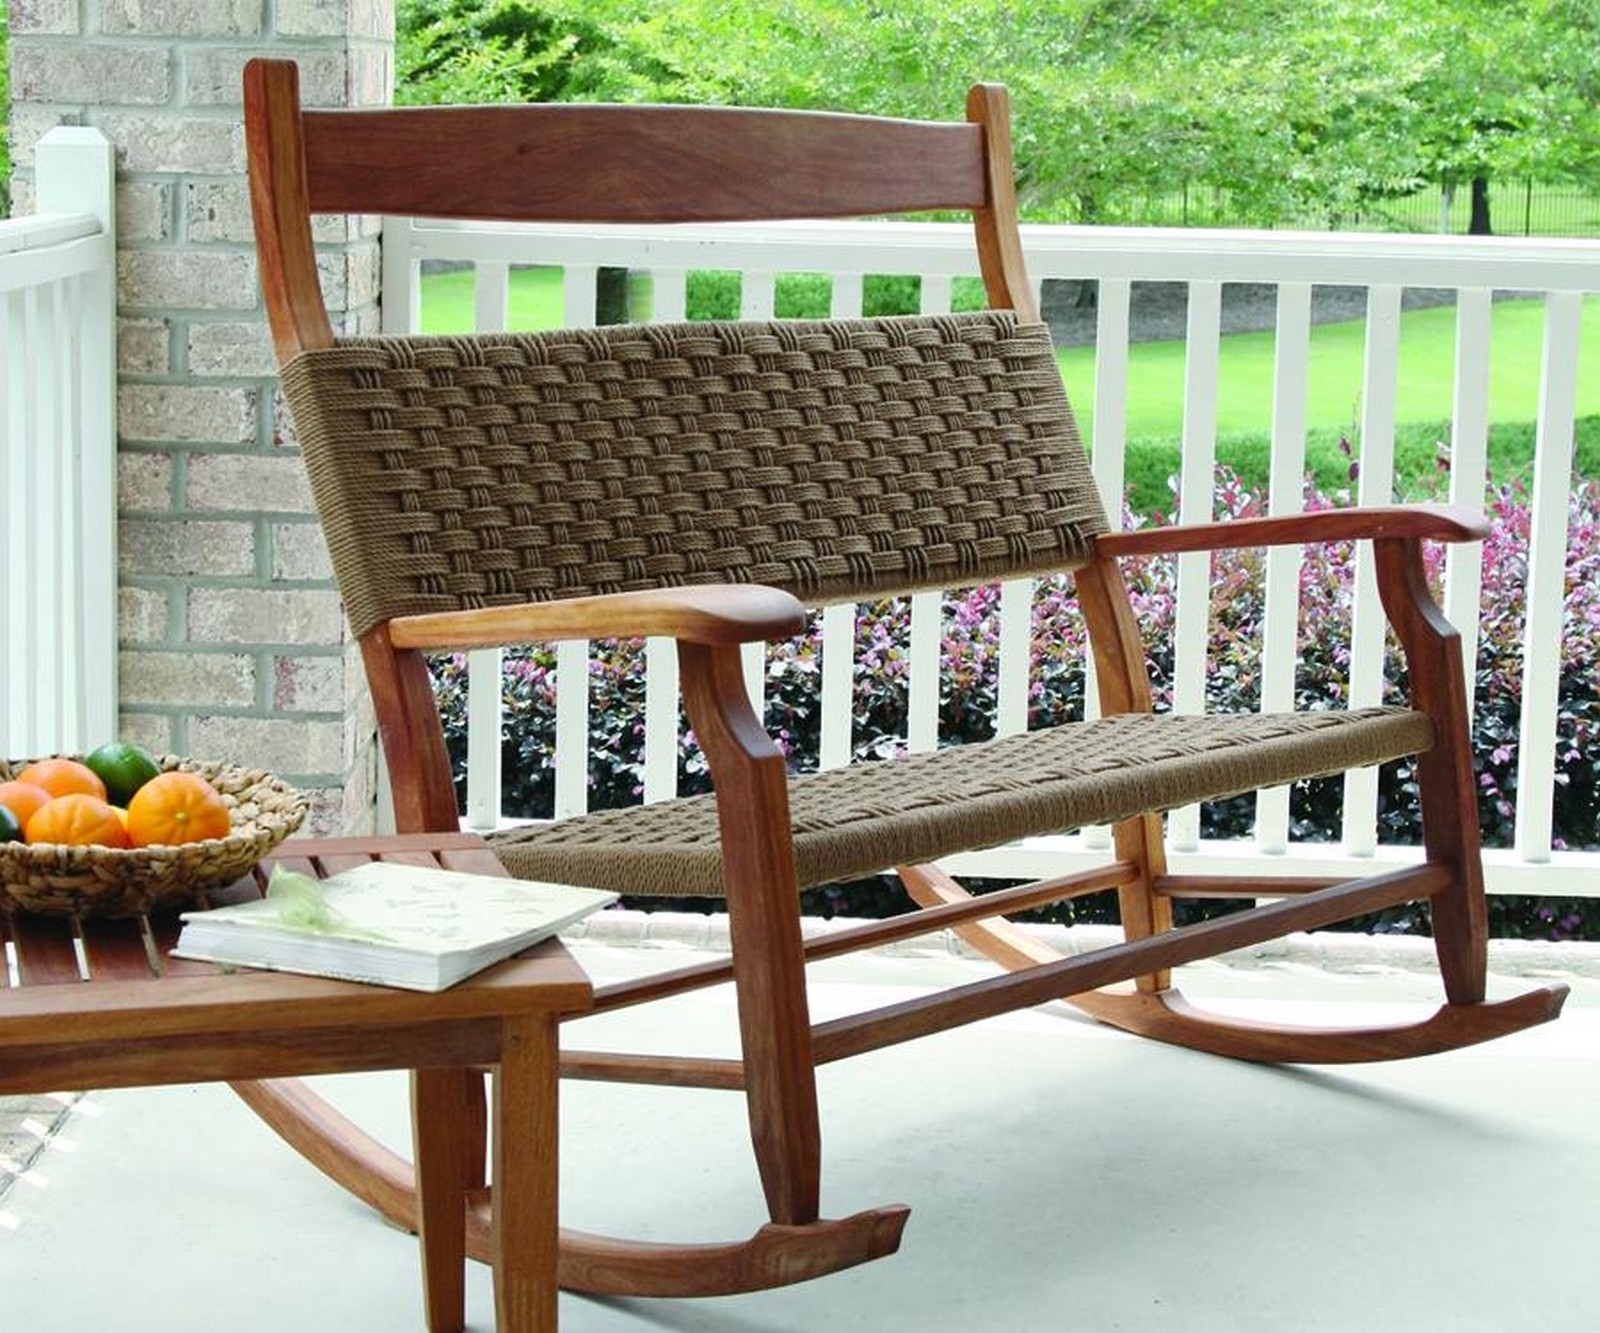 Uncategorized : Wicker Outdoor Rocking Chair In Beautiful Martha For Most Recent All Weather Patio Rocking Chairs (View 15 of 20)